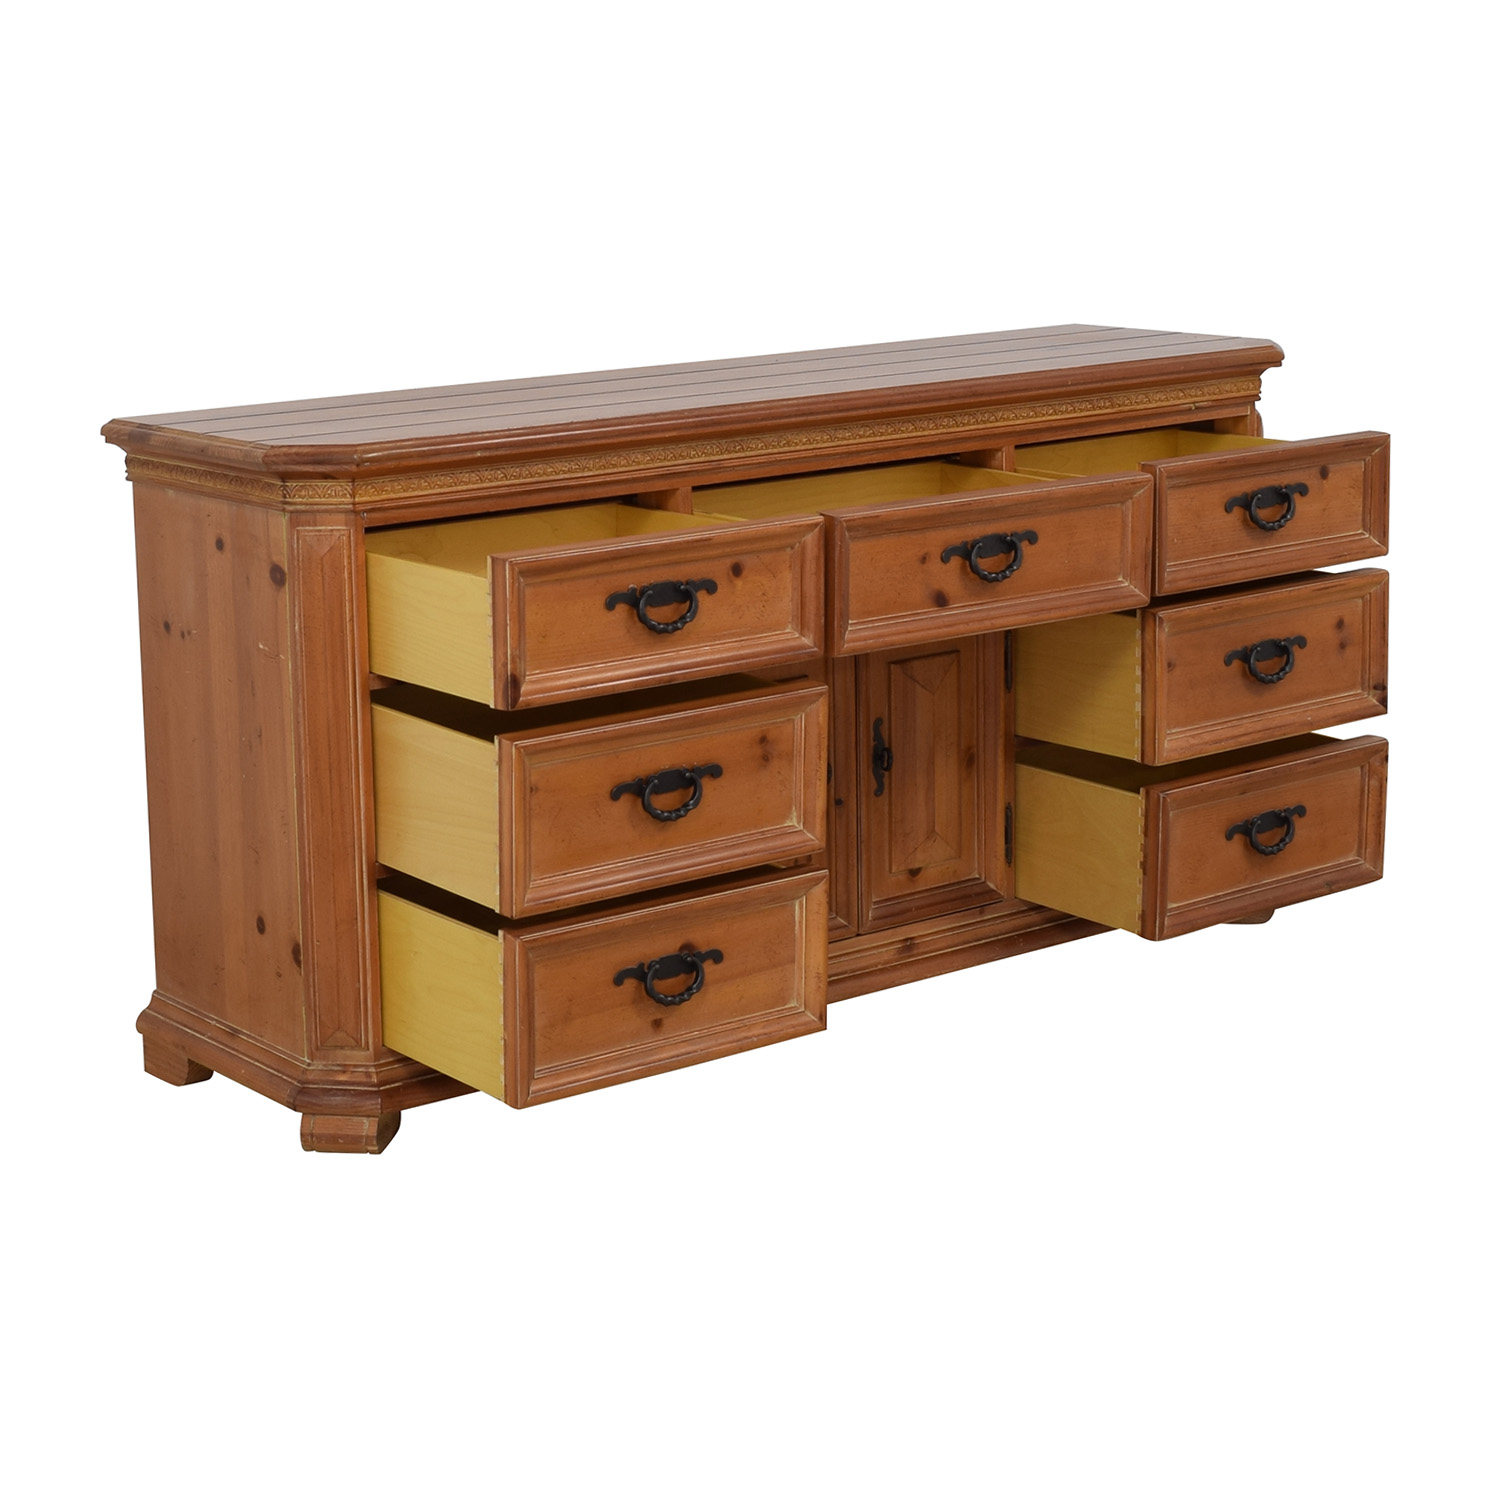 Thomasville Thomasville Wood Dresser with Middle Cabinet nyc